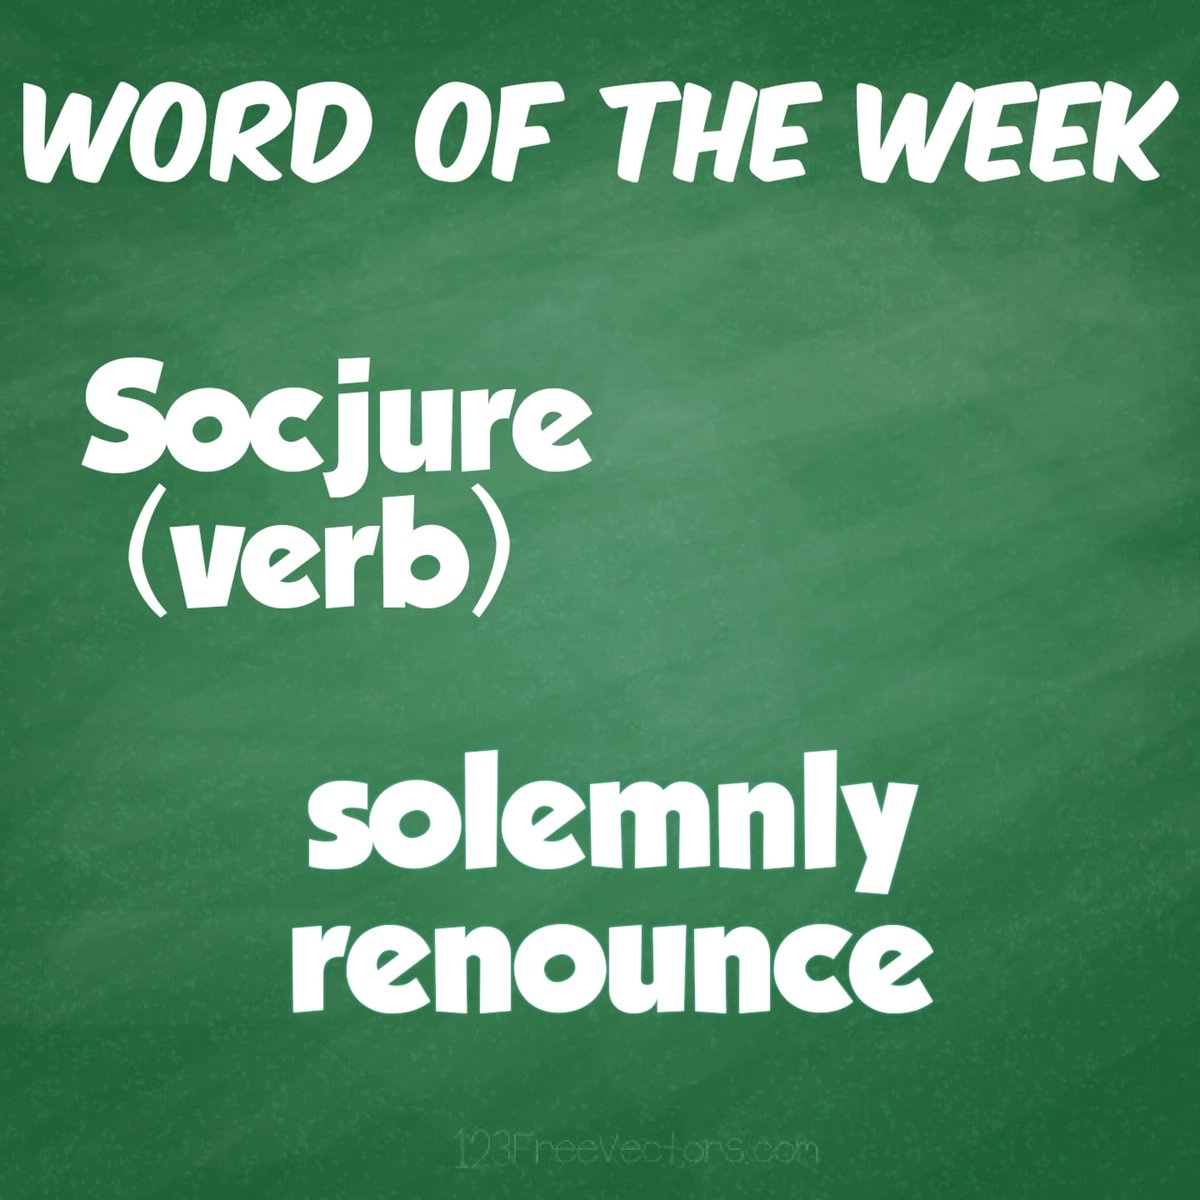 Late start to class today but let's get to it. This week's word is based on abjure #wotw #wotd #word #words #WordPress #wordoftheday #wordoftheweek #English #Language #learning #education #sockstyle #sockgame #sockaholic #sockaddict #funkysocks #happysocks #pairofthieves #sunday